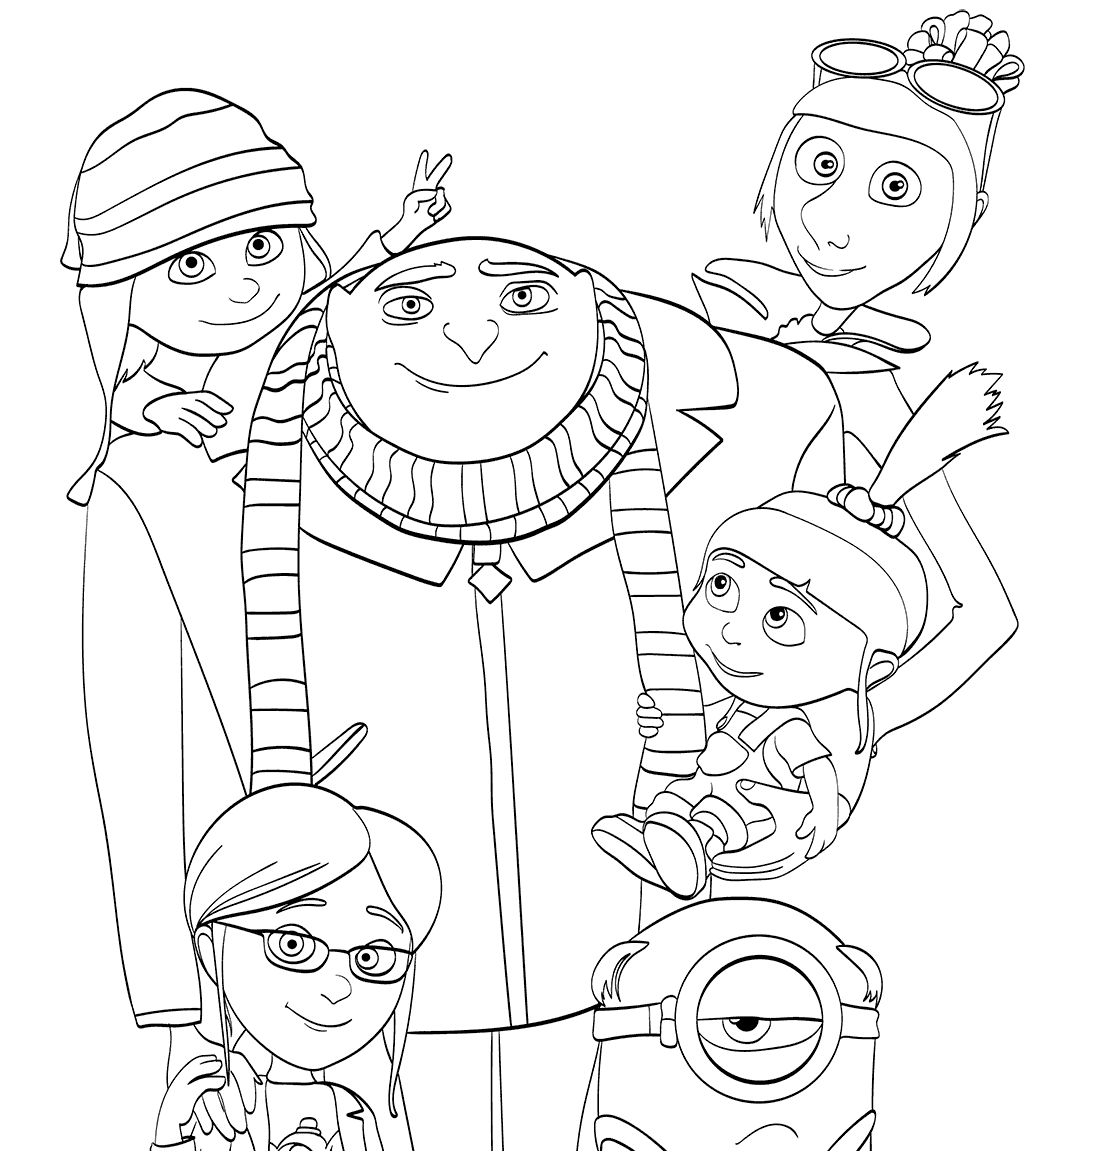 Despicable Me 3 coloring pages